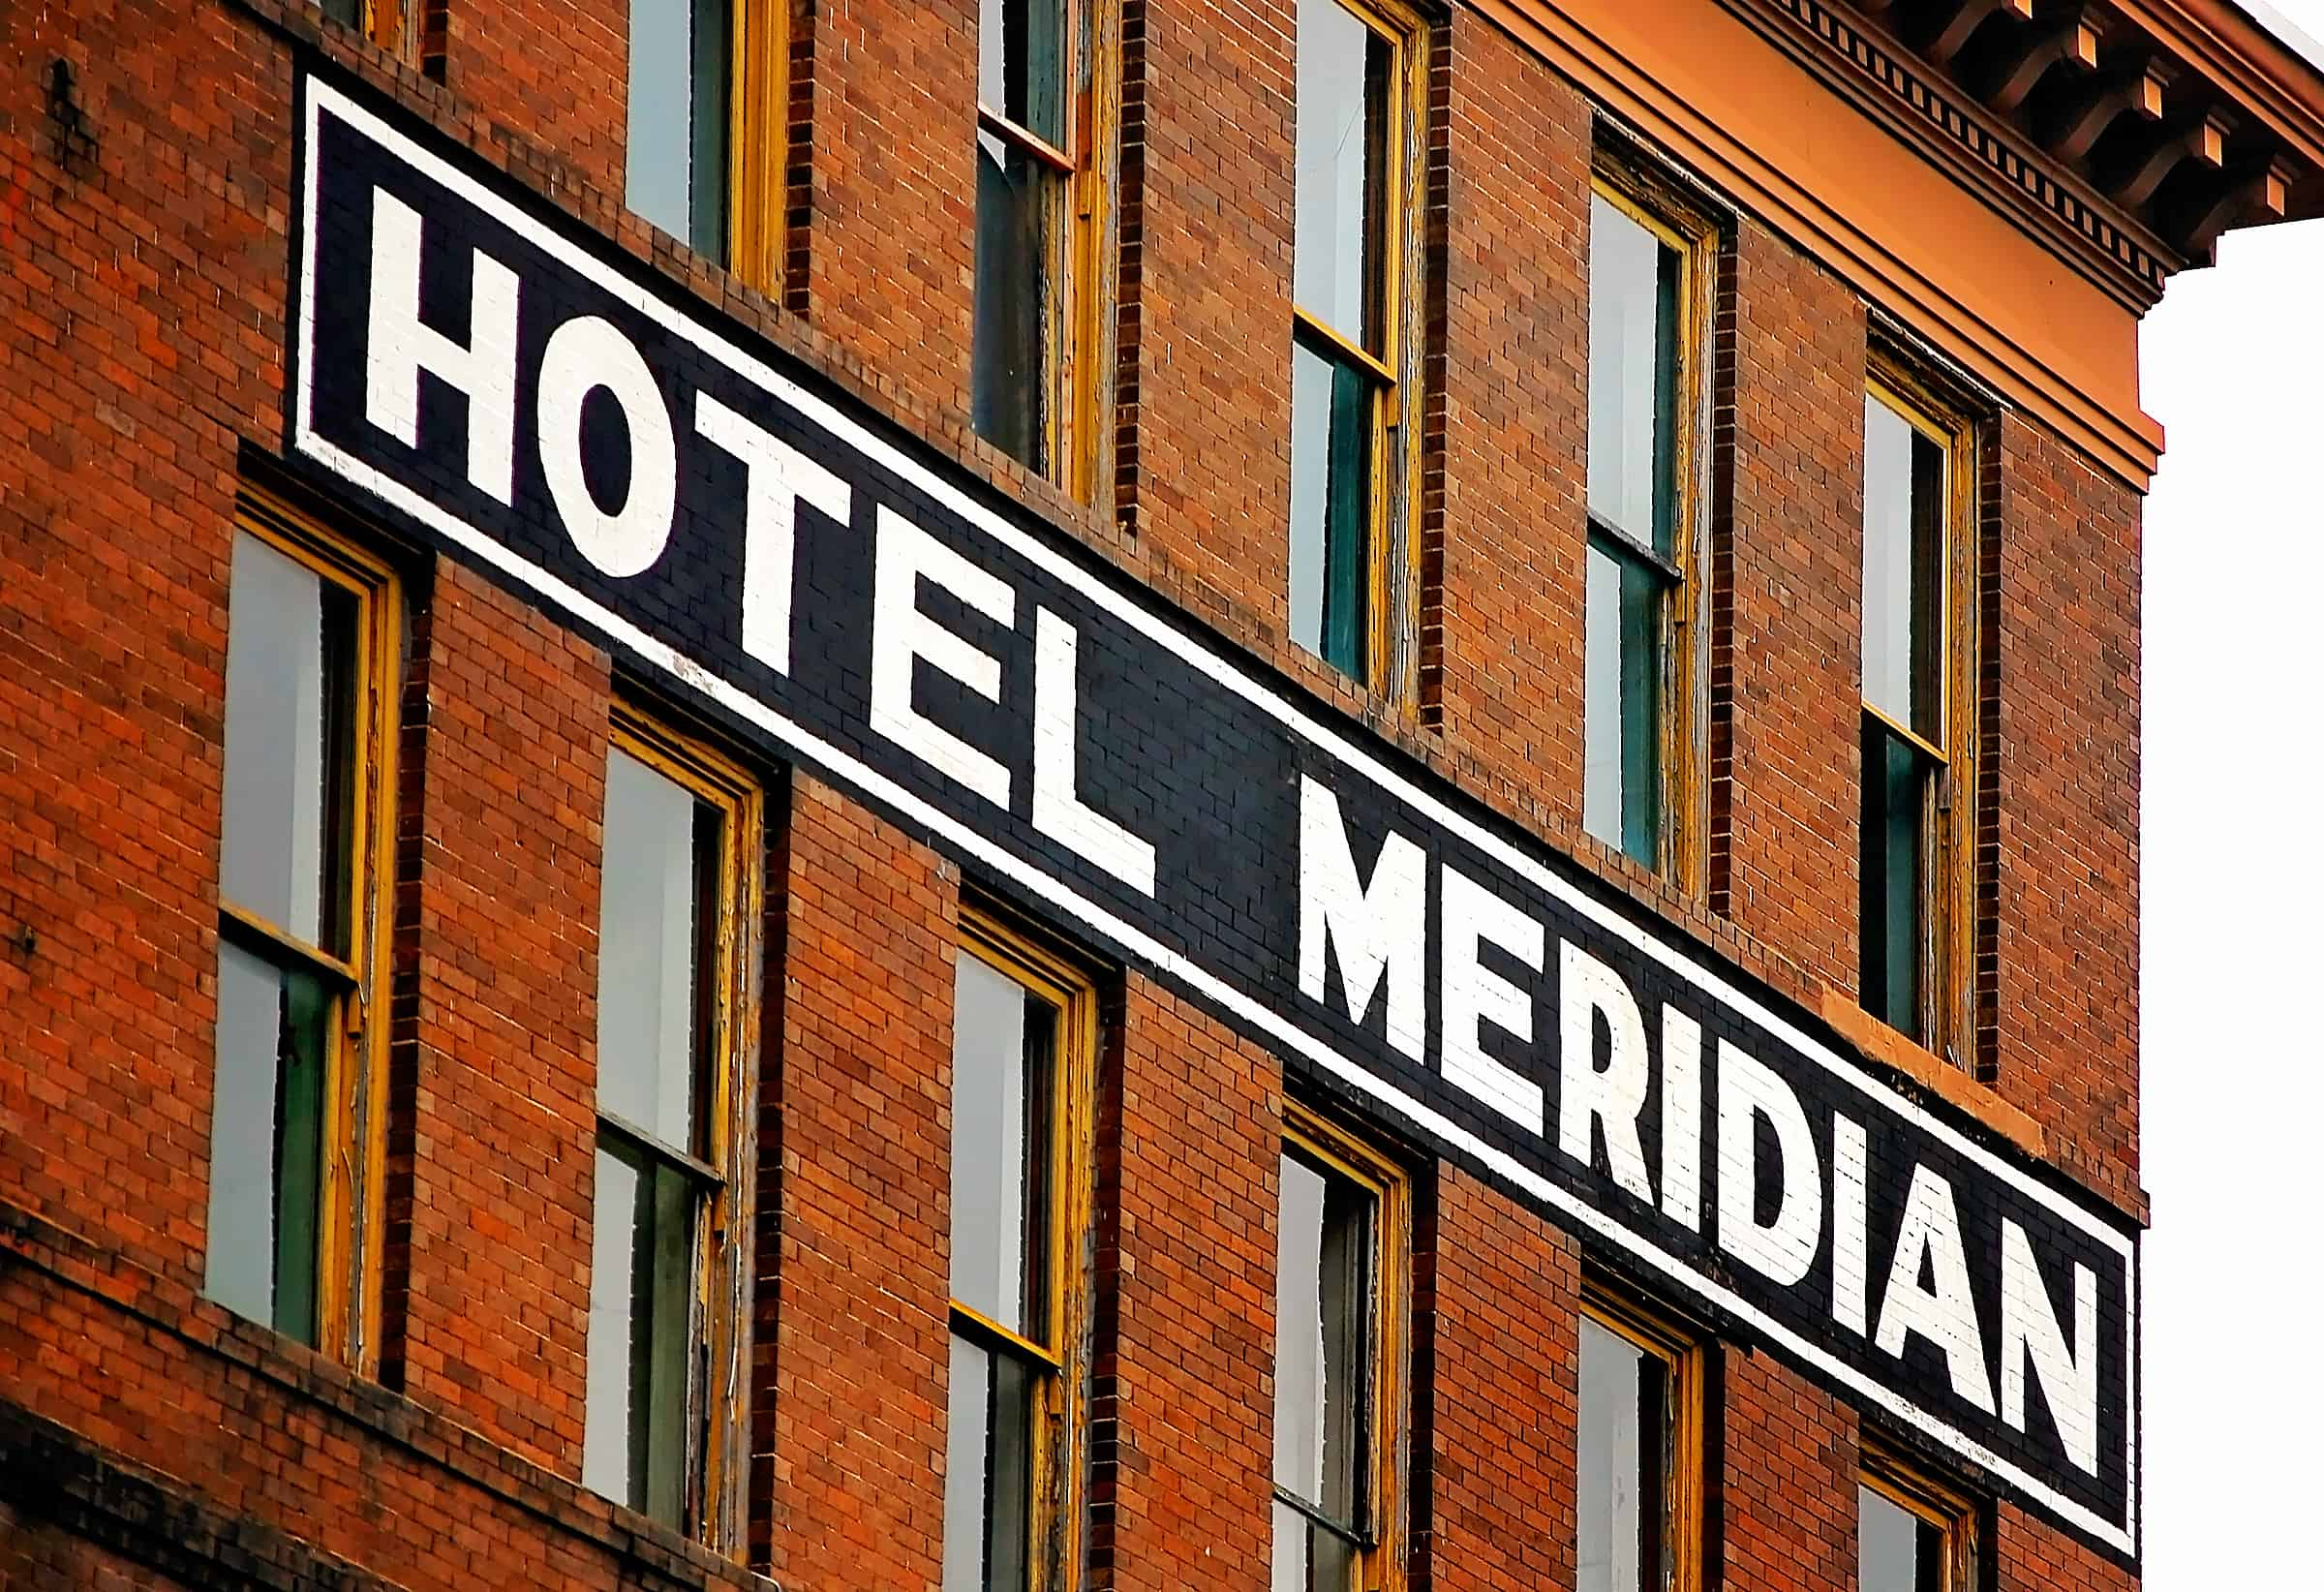 Abandoned Hotel Meridian in Meridian, Mississippi